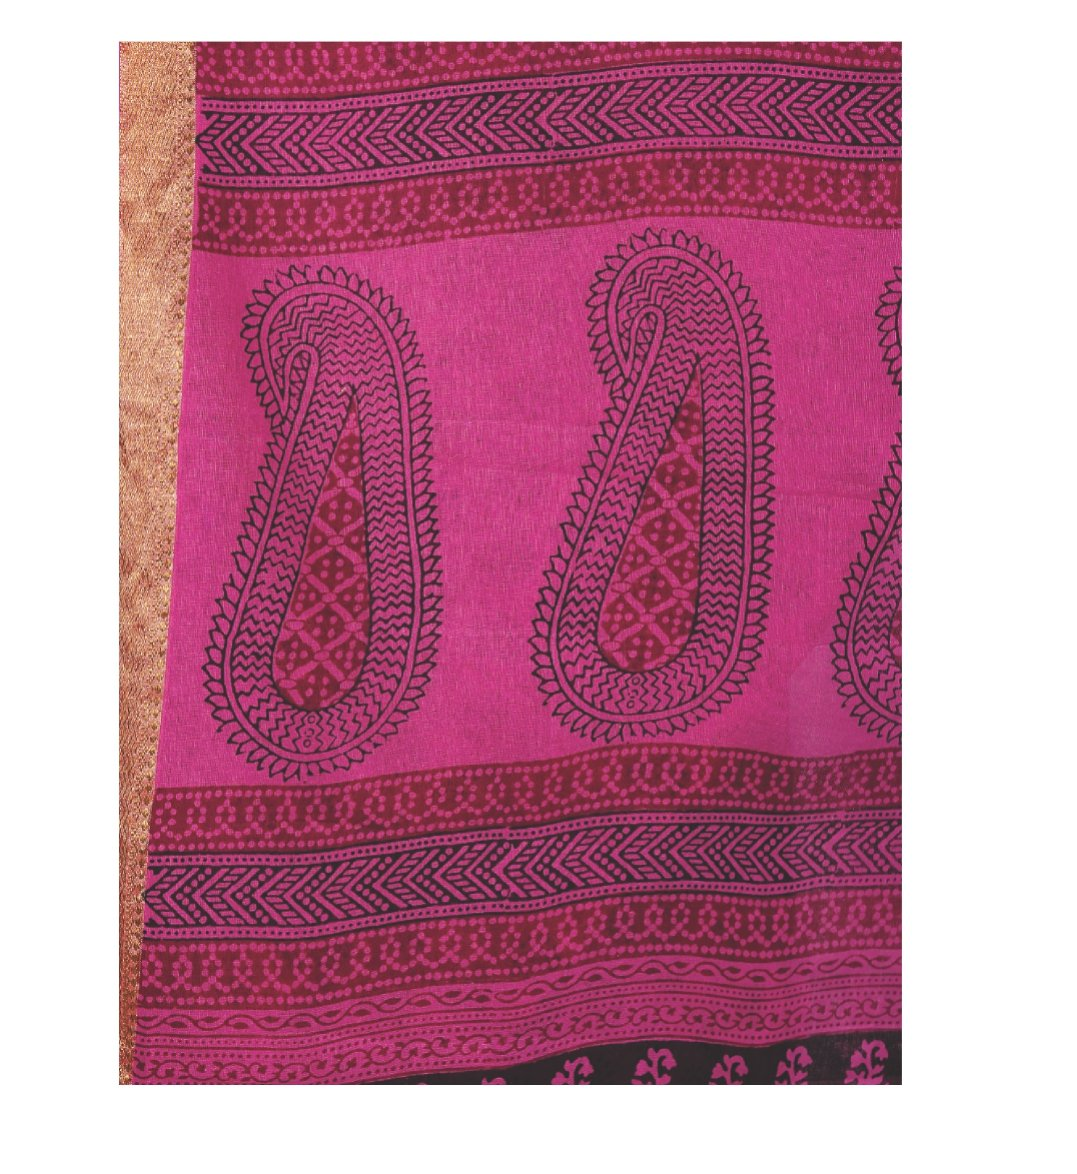 Magenta Cotton Hand Block Bagh Print Handcrafted Saree-Saree-Kalakari India-ZIBASA0047-Bagh, Cotton, Geographical Indication, Hand Blocks, Hand Crafted, Heritage Prints, Natural Dyes, Sarees, Sustainable Fabrics-[Linen,Ethnic,wear,Fashionista,Handloom,Handicraft,Indigo,blockprint,block,print,Cotton,Chanderi,Blue, latest,classy,party,bollywood,trendy,summer,style,traditional,formal,elegant,unique,style,hand,block,print, dabu,booti,gift,present,glamorous,affordable,collectible,Sari,Saree,printed,